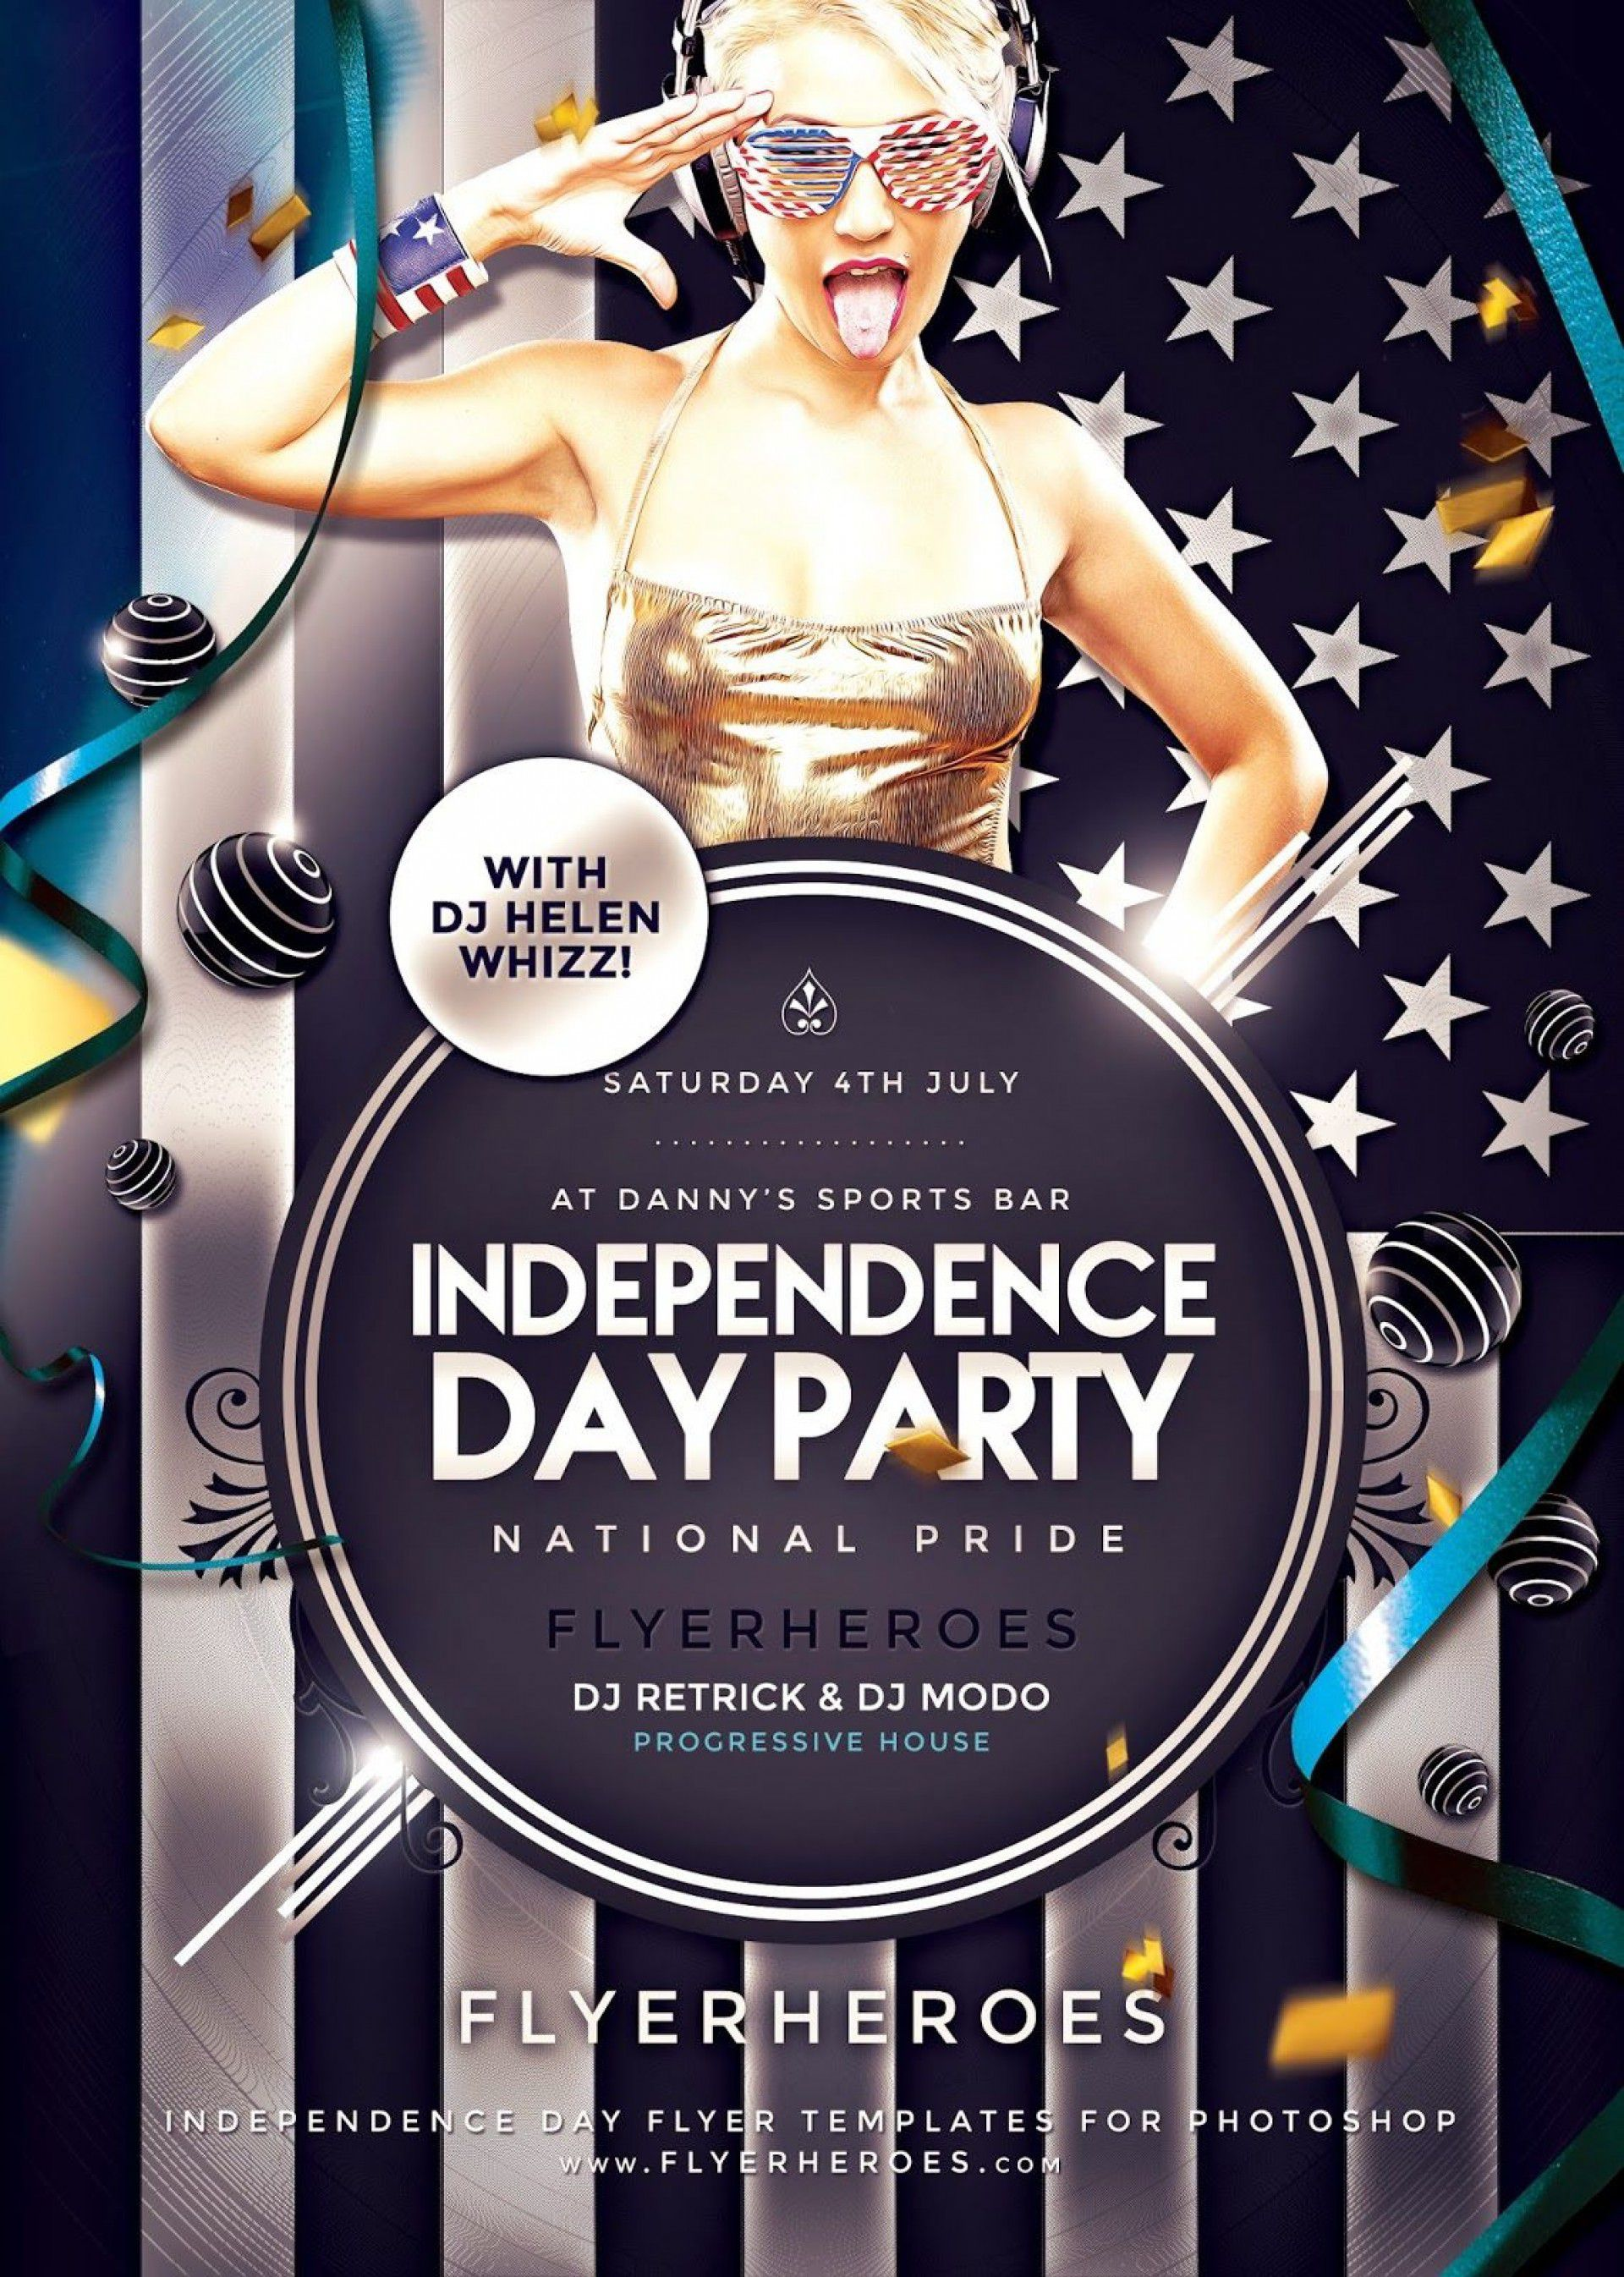 002 Imposing Free Party Flyer Template For Mac Design Full